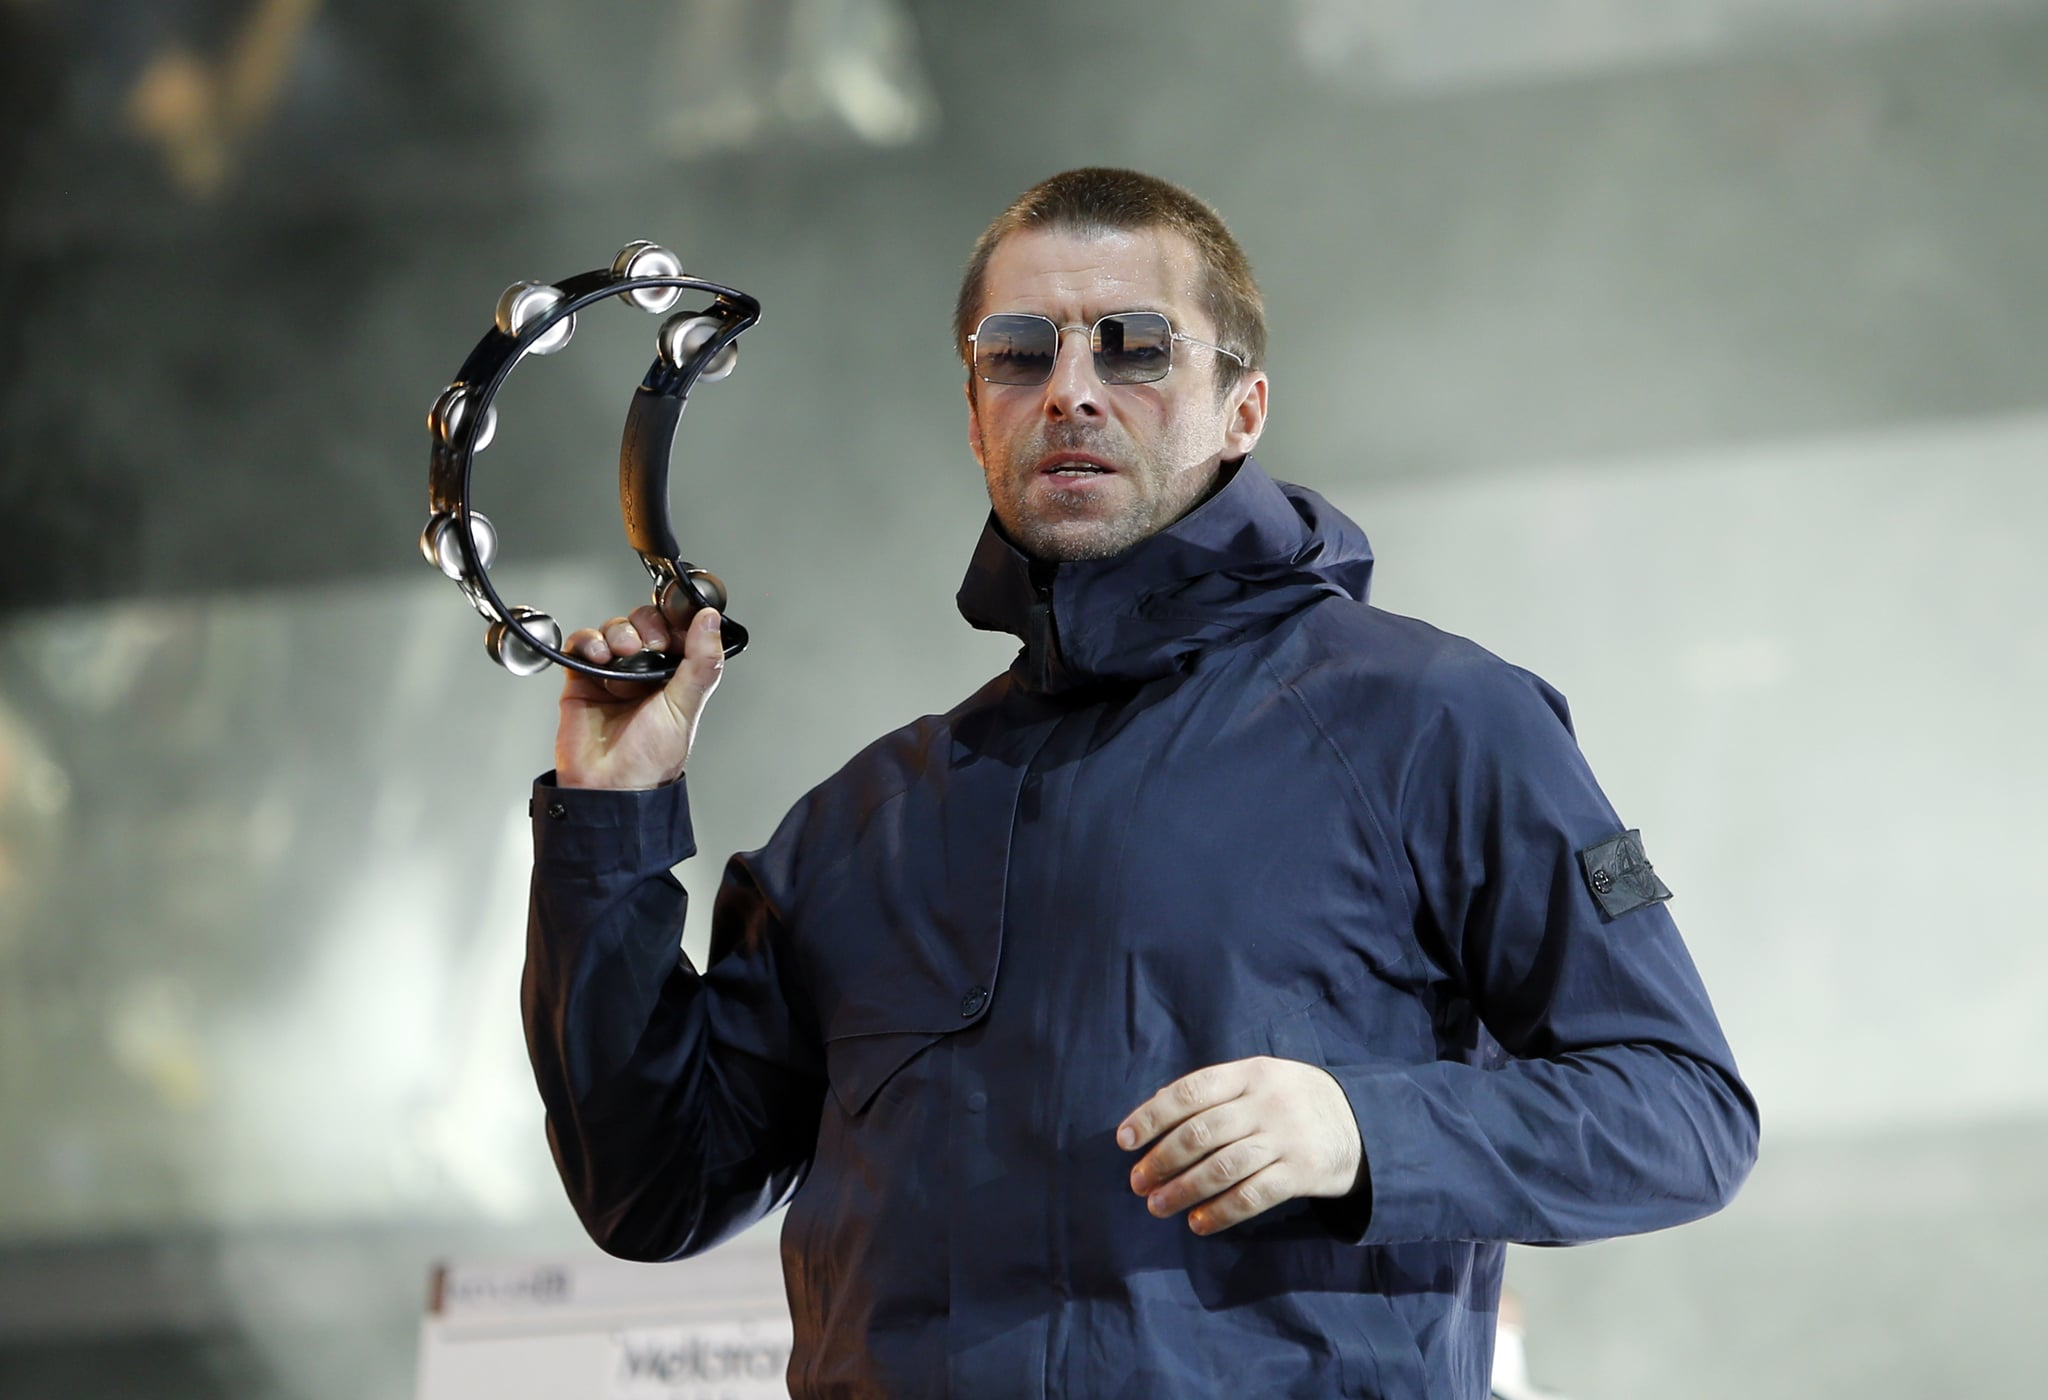 Liam Gallagher: DJs have become